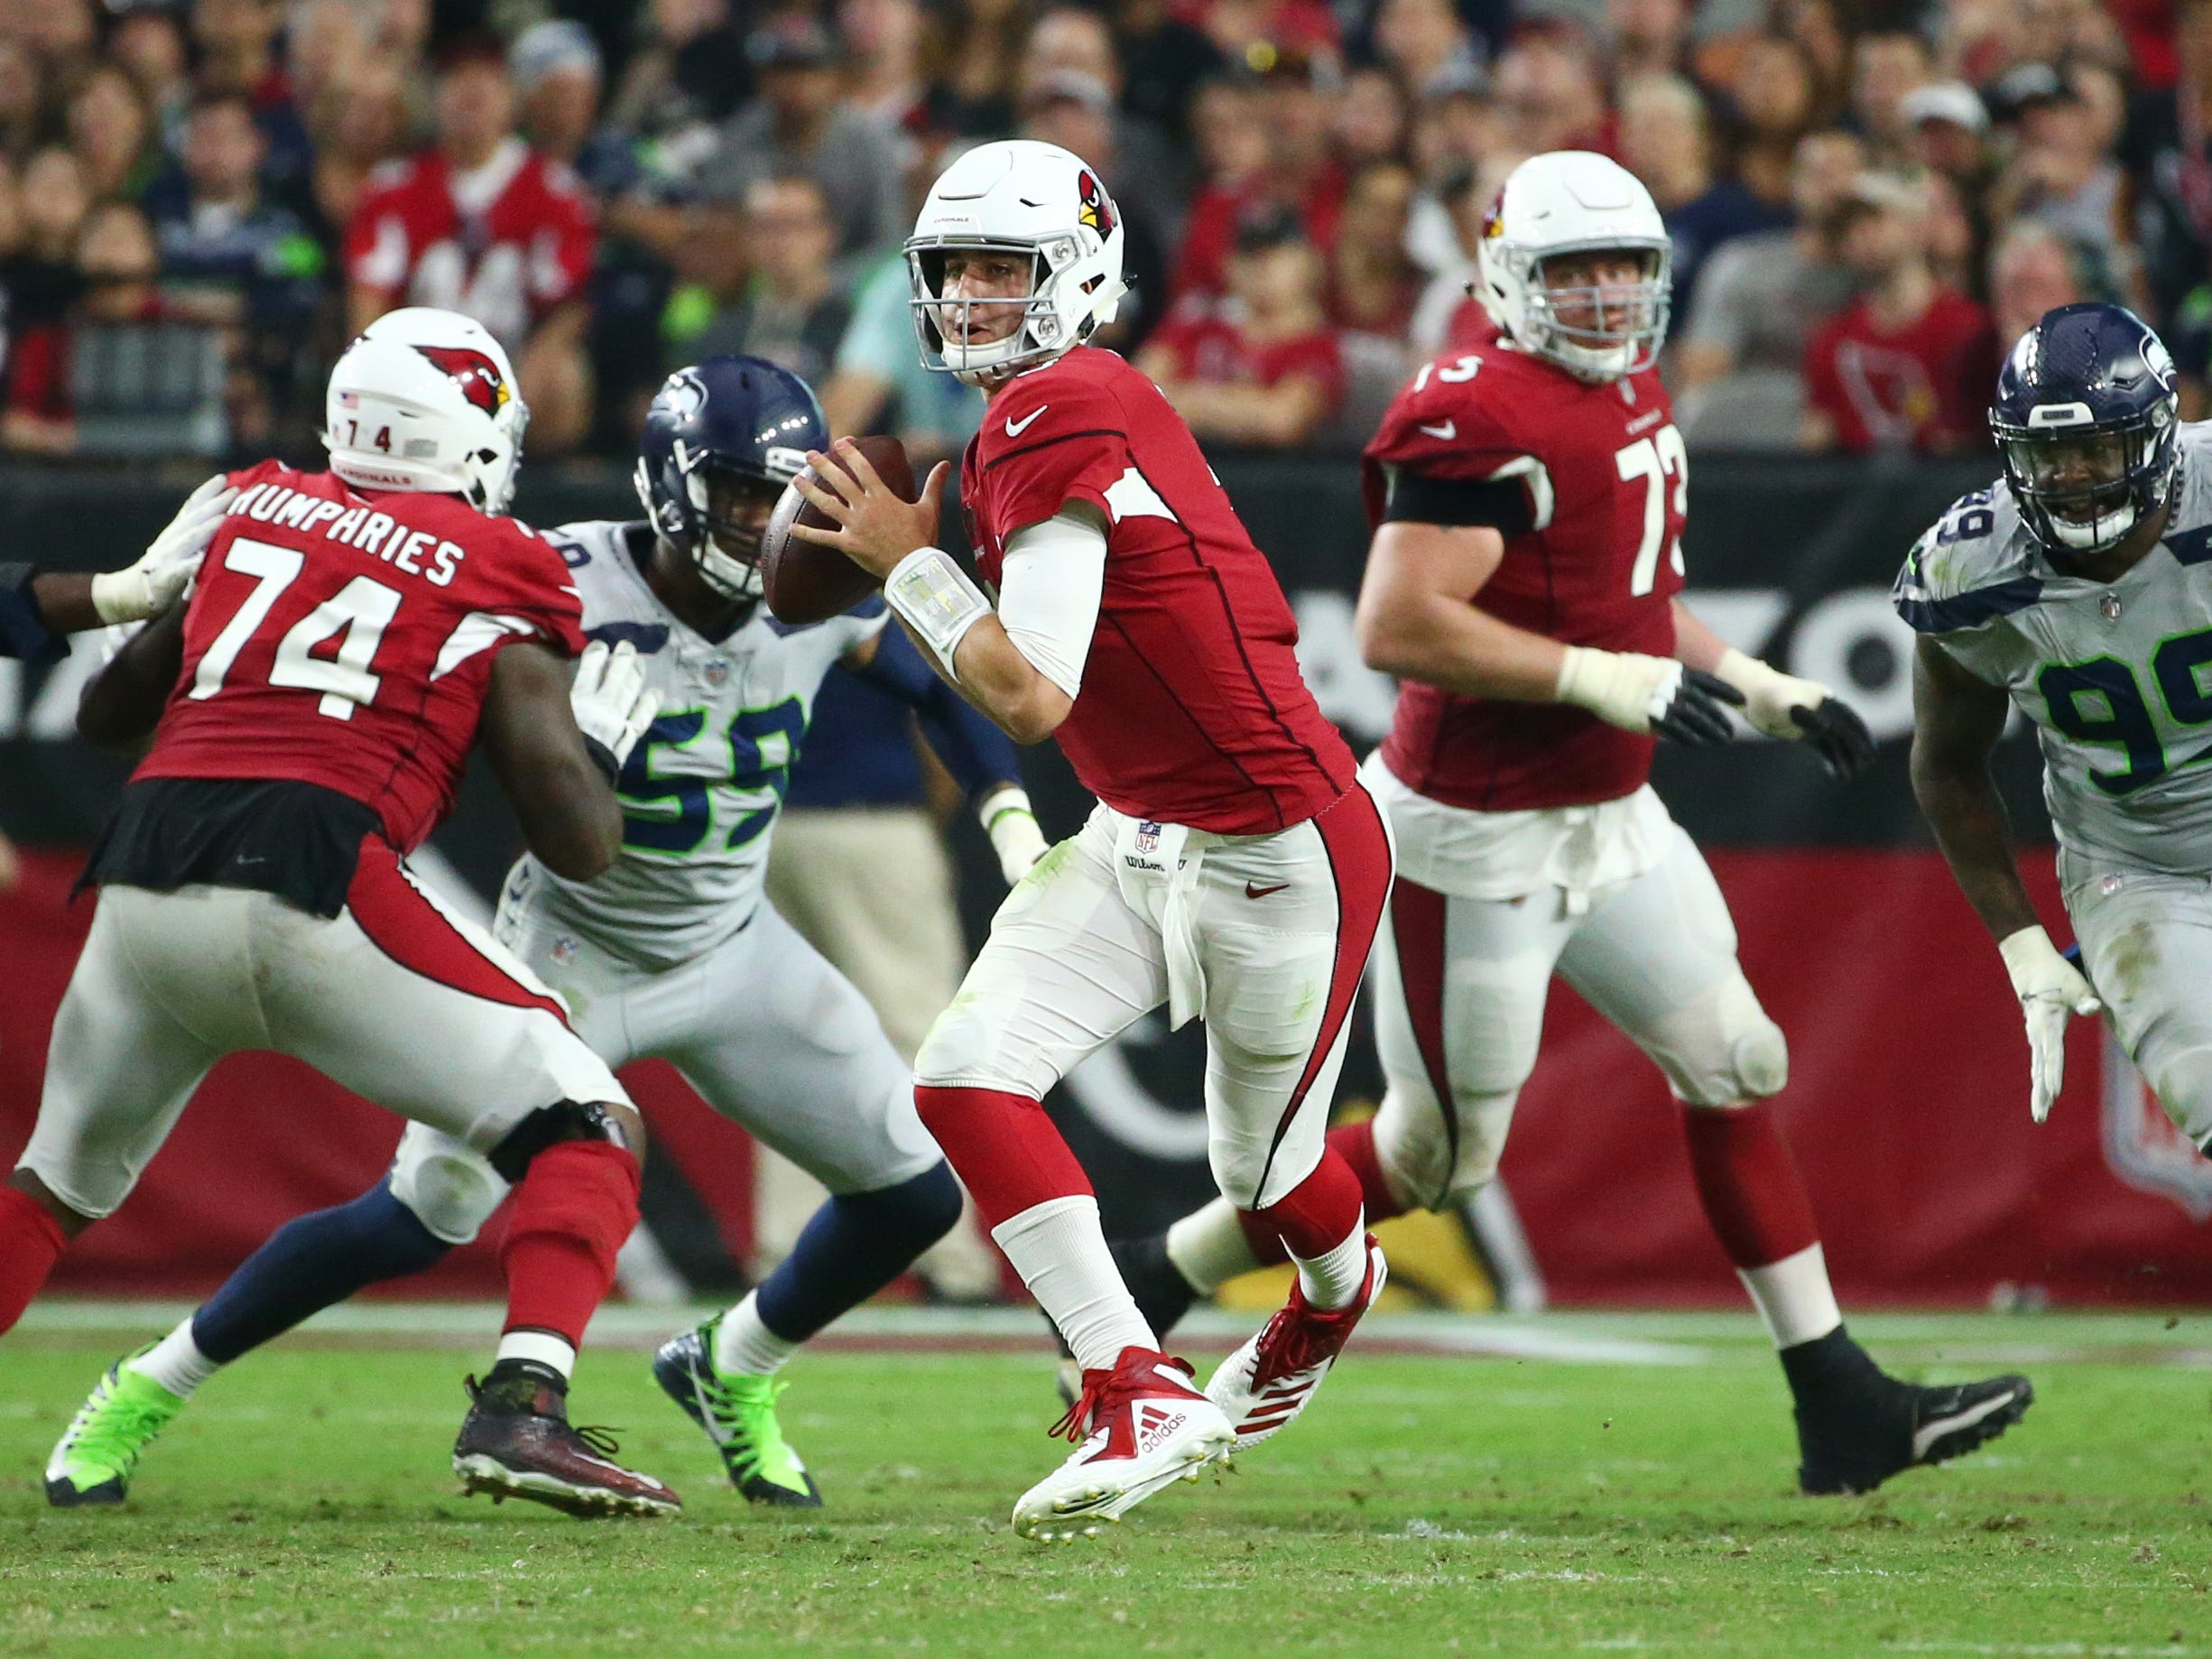 Arizona Cardinals quarterback Josh Rosin looks to throw against the Seattle Seahawks in the second half at State Farm Stadium in Glendale, Ariz.